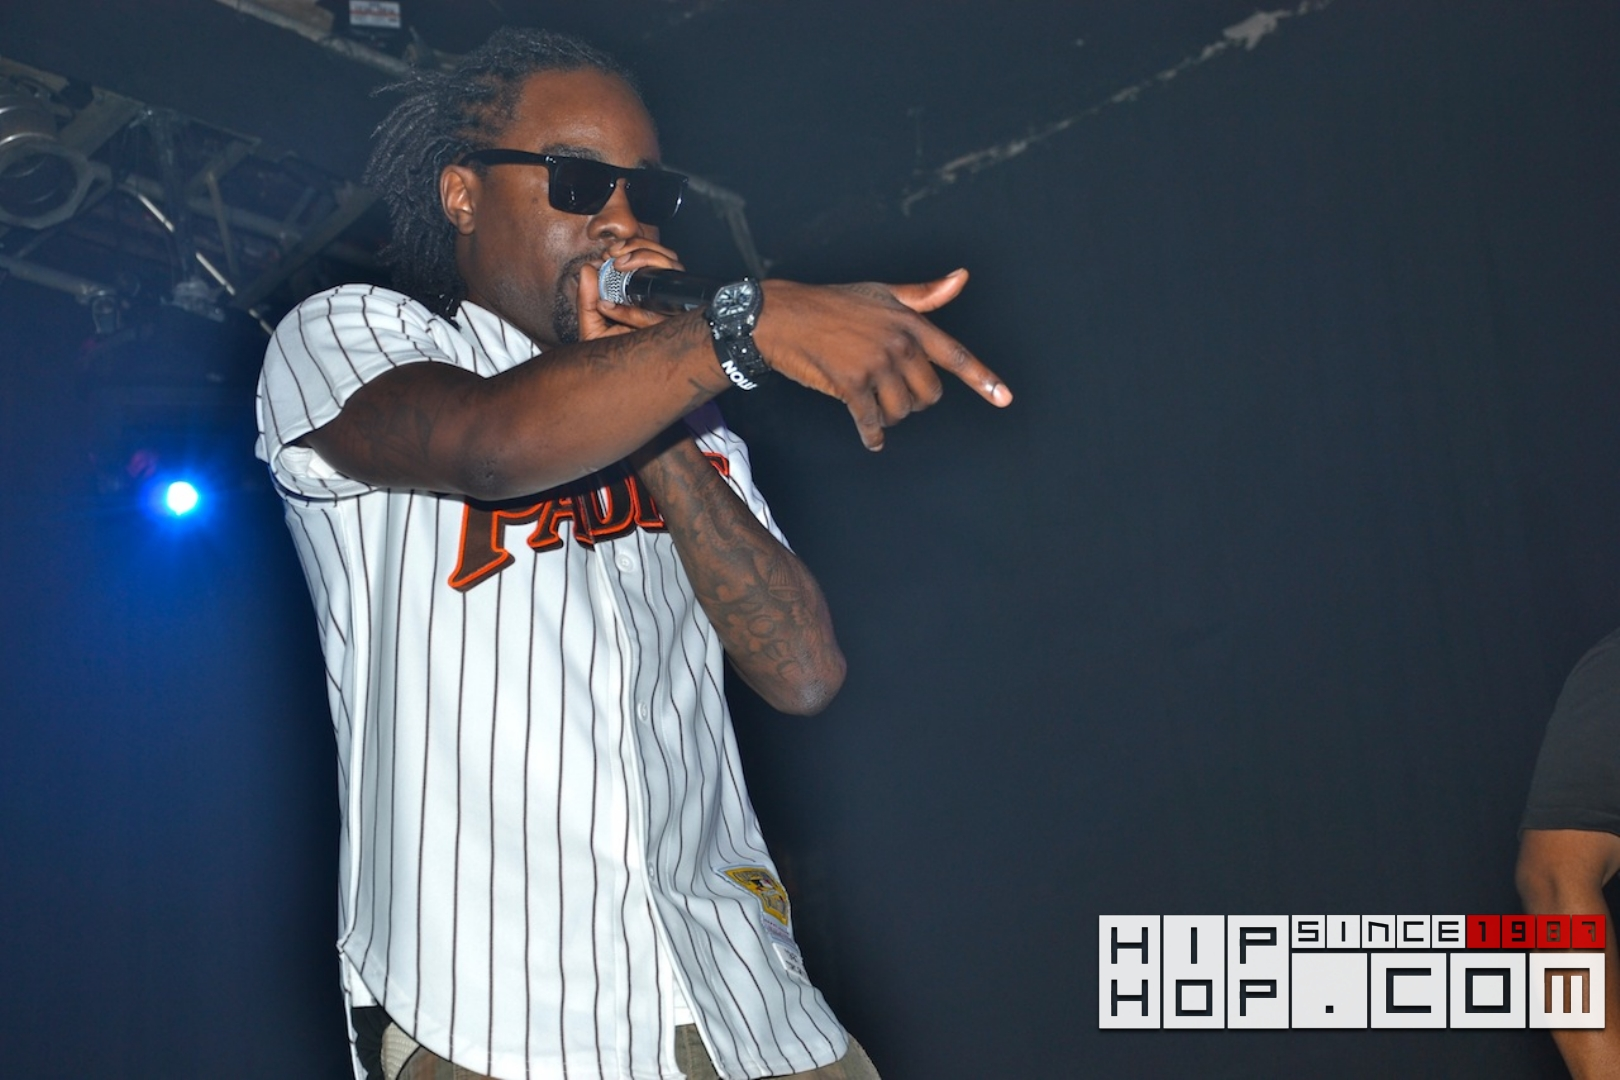 THROWBACK!!! @Wale 8/11/11 TLA Performance in Philly (Video)